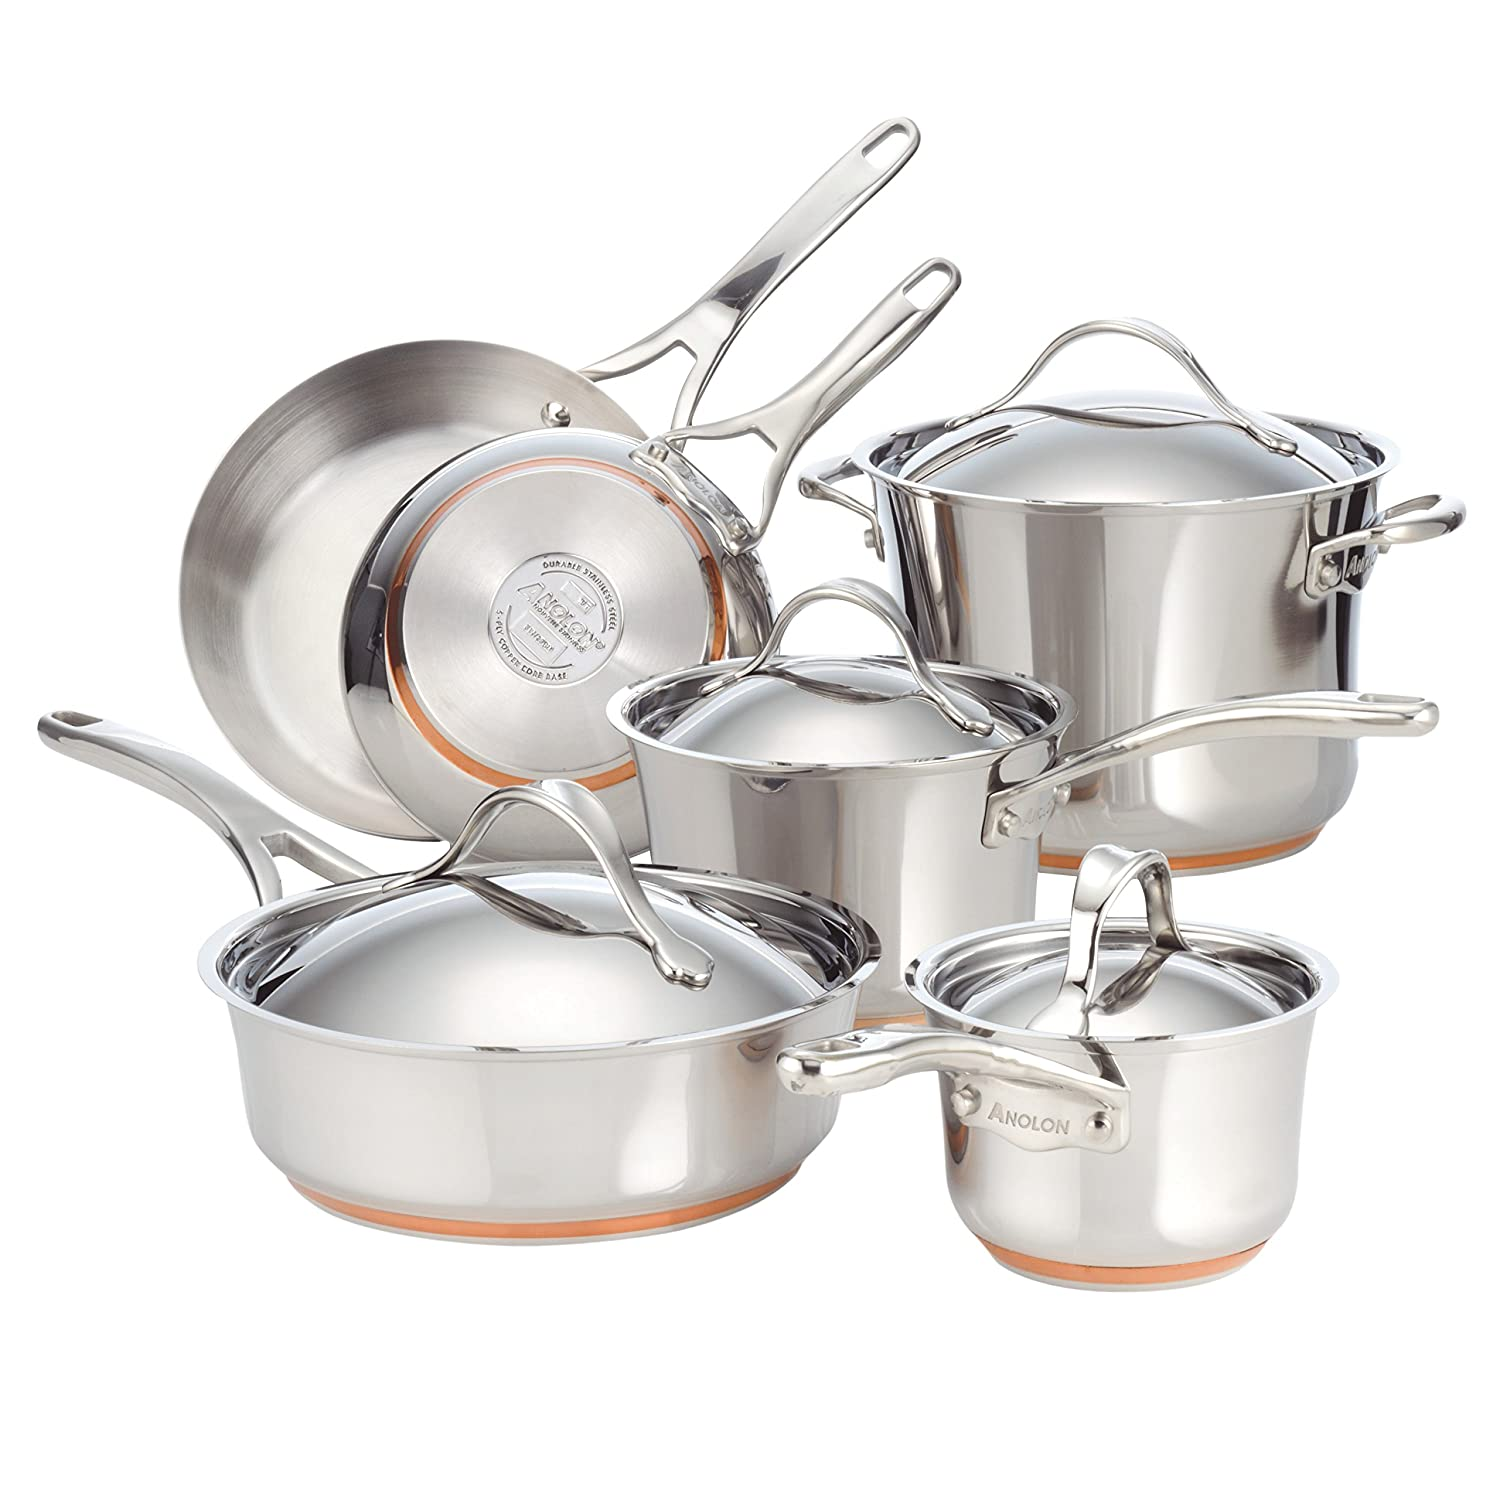 Anolon Nouvelle 11-Piece Copper Stainless Steel Cookware Set